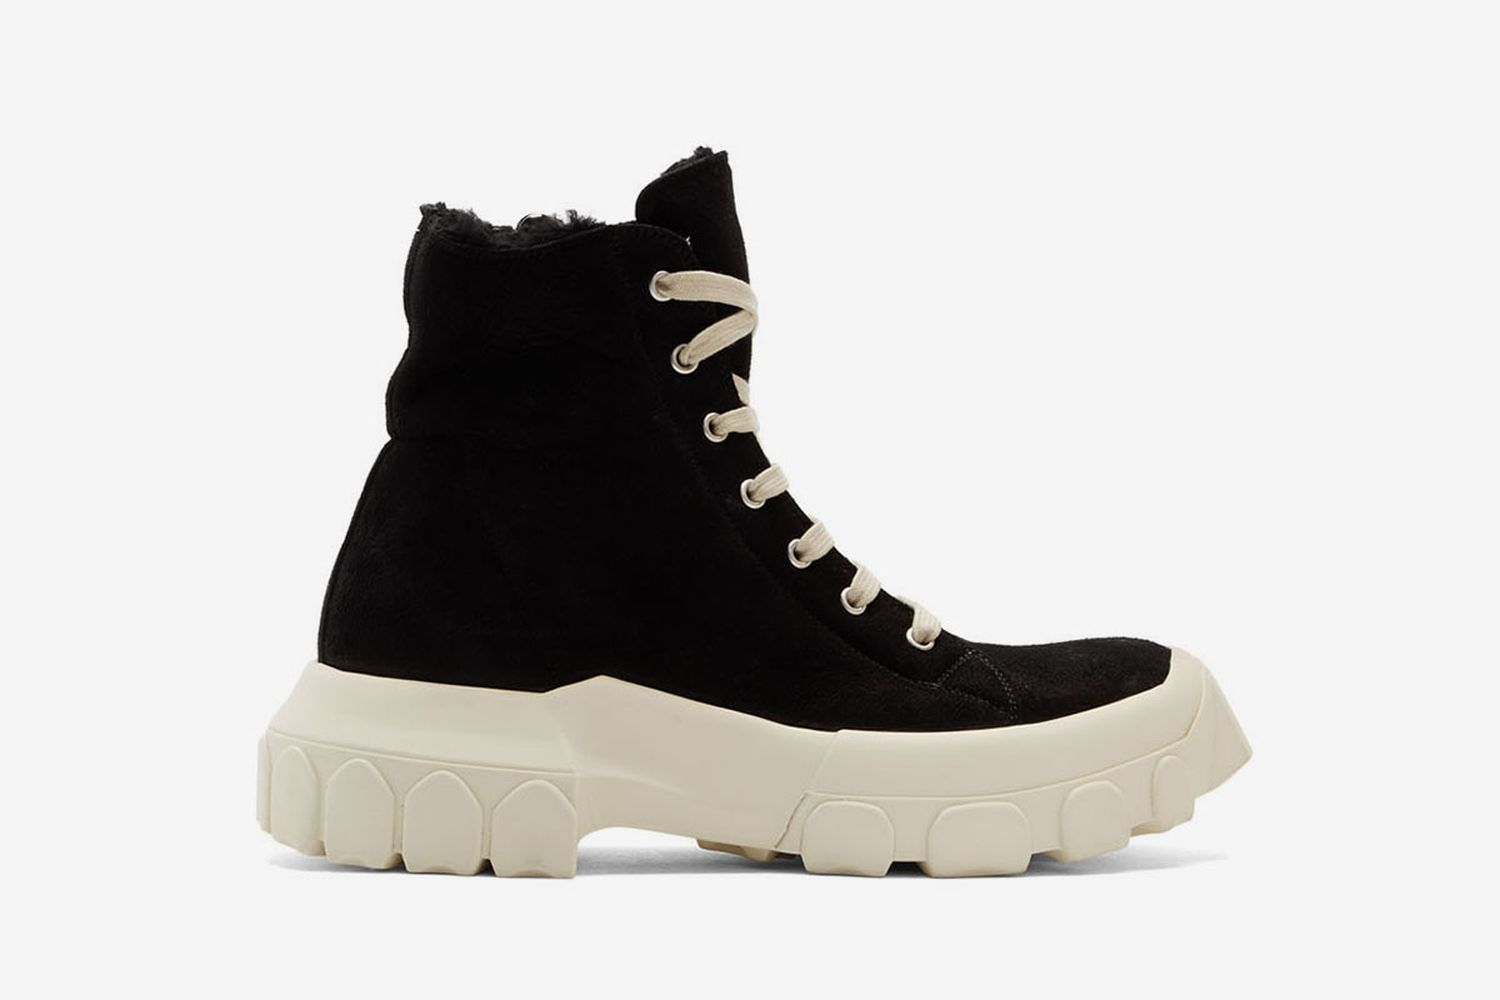 Shearling Tractor Sneaker Boots